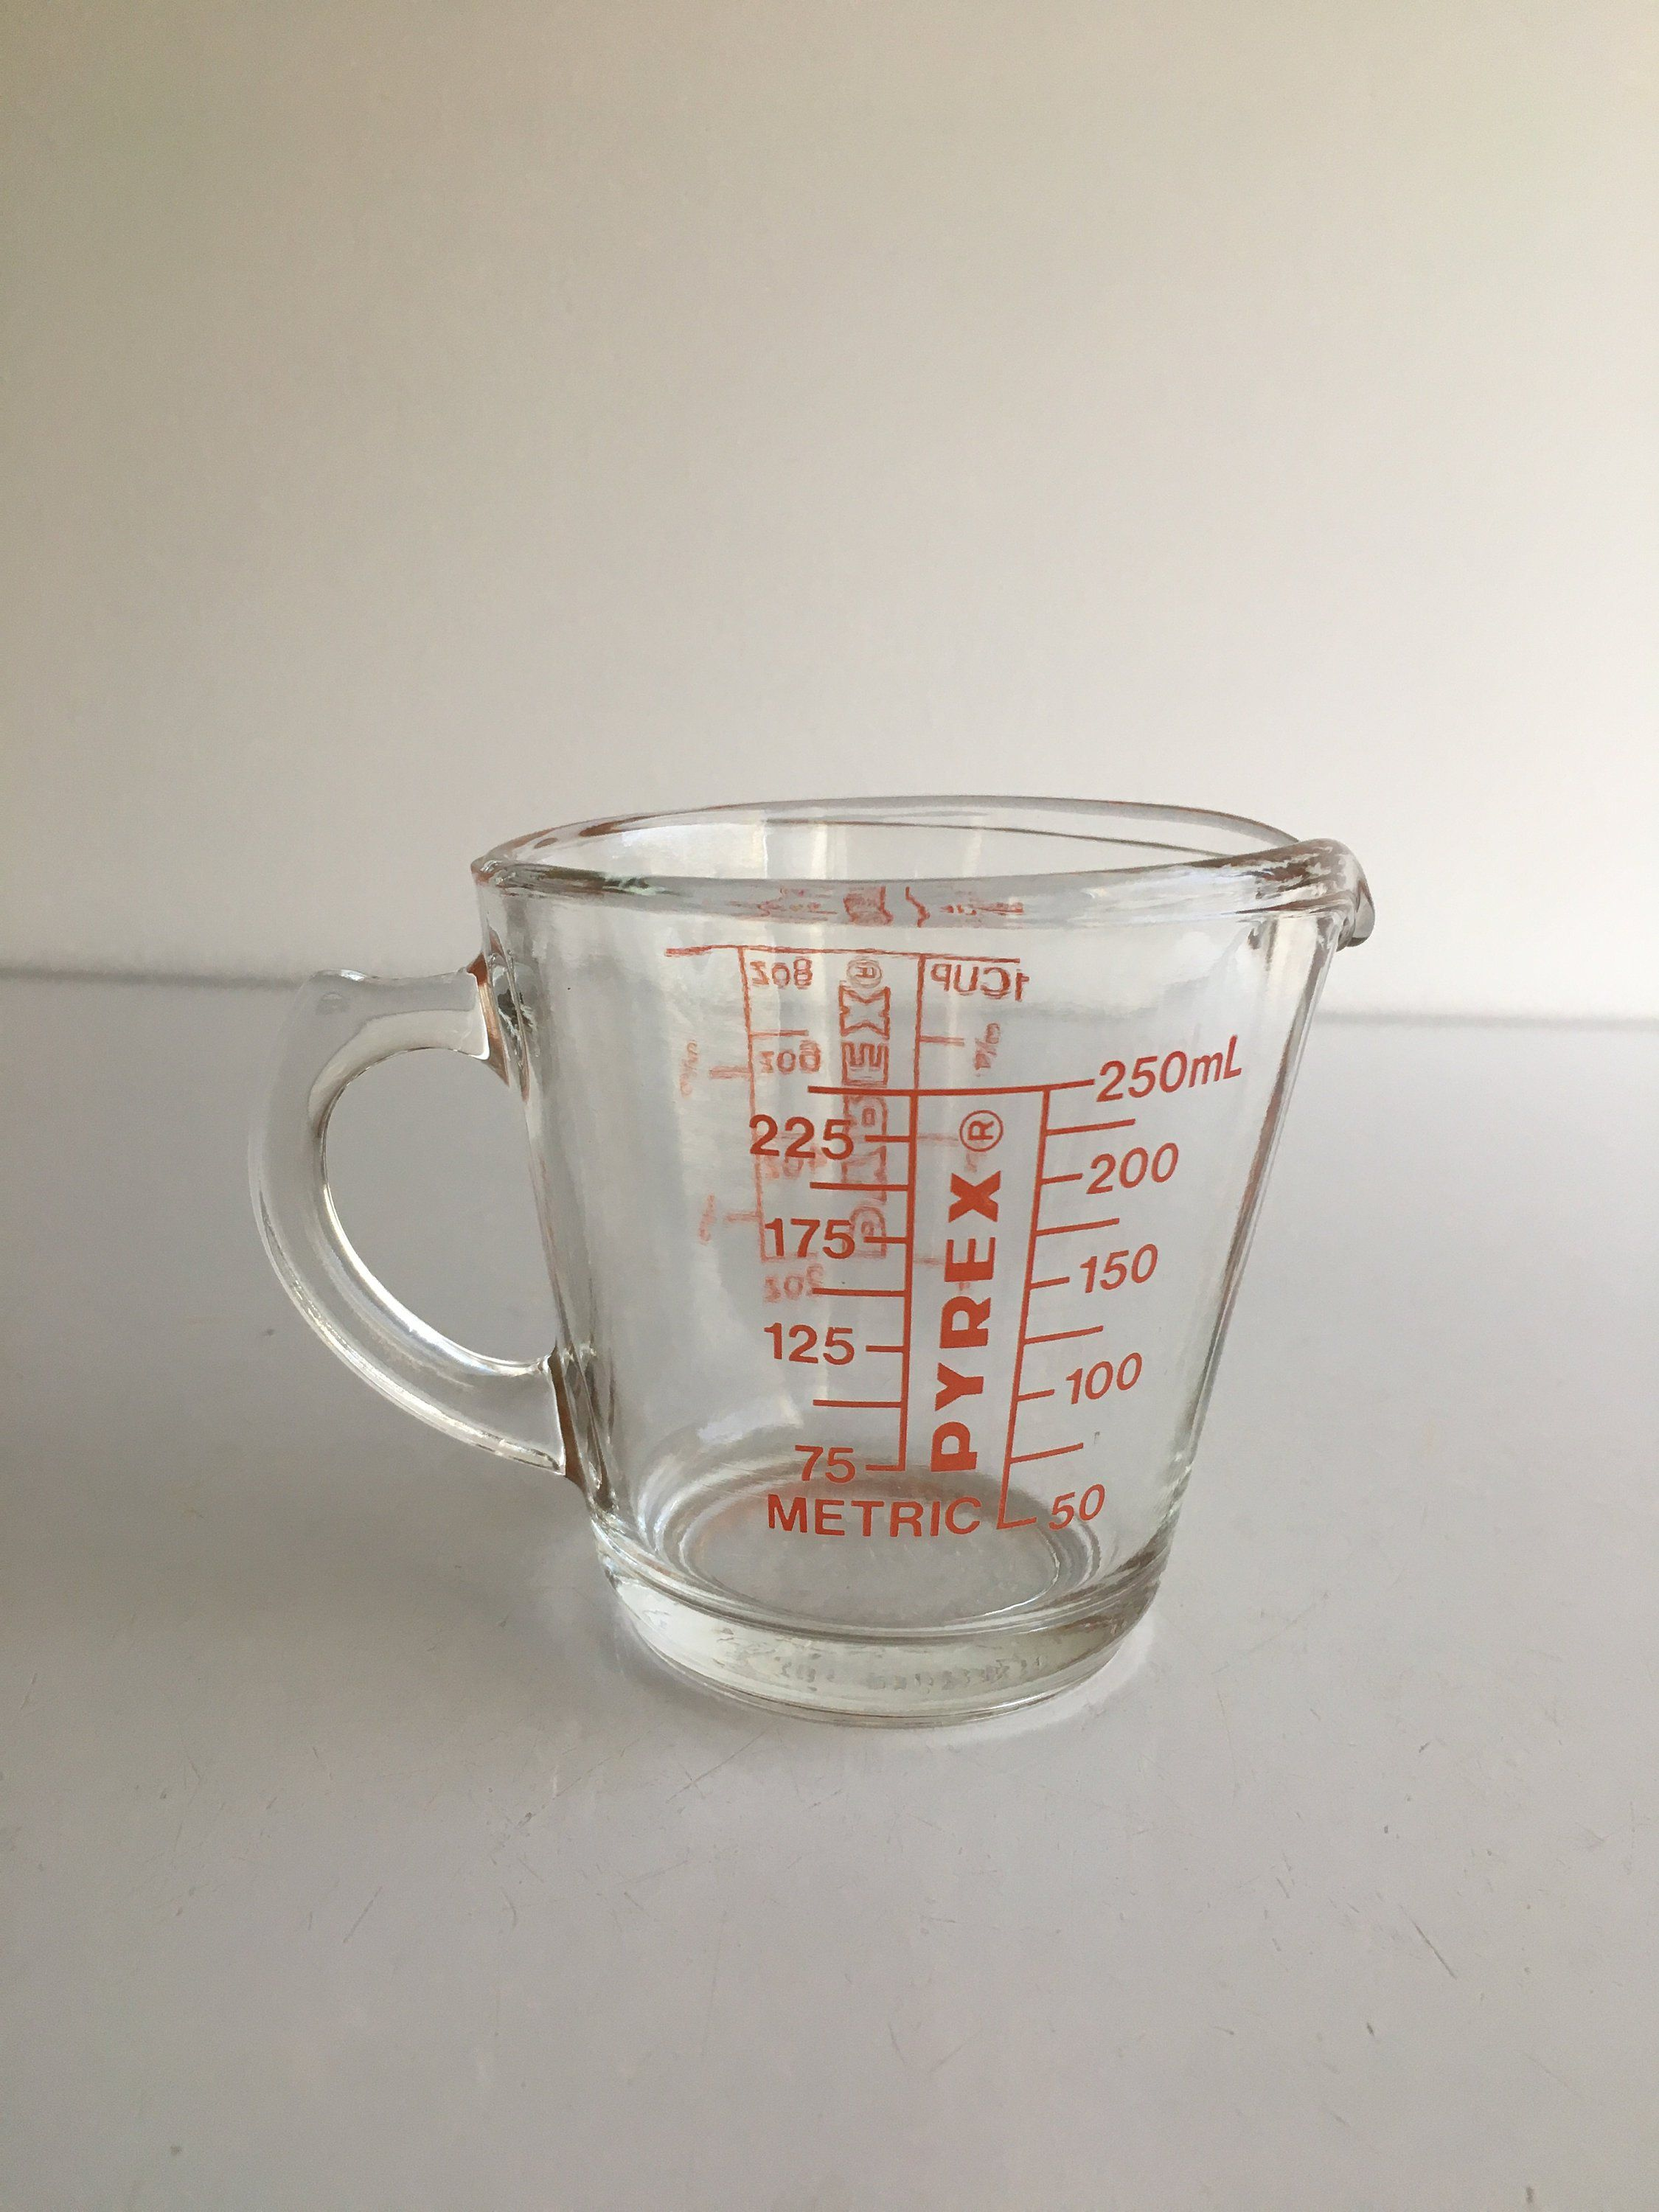 3e8e36e92 Vintage Pyrex Measuring Cup 1 Cup D Handle Red Lettering by  TheSuburbanPicker on Etsy